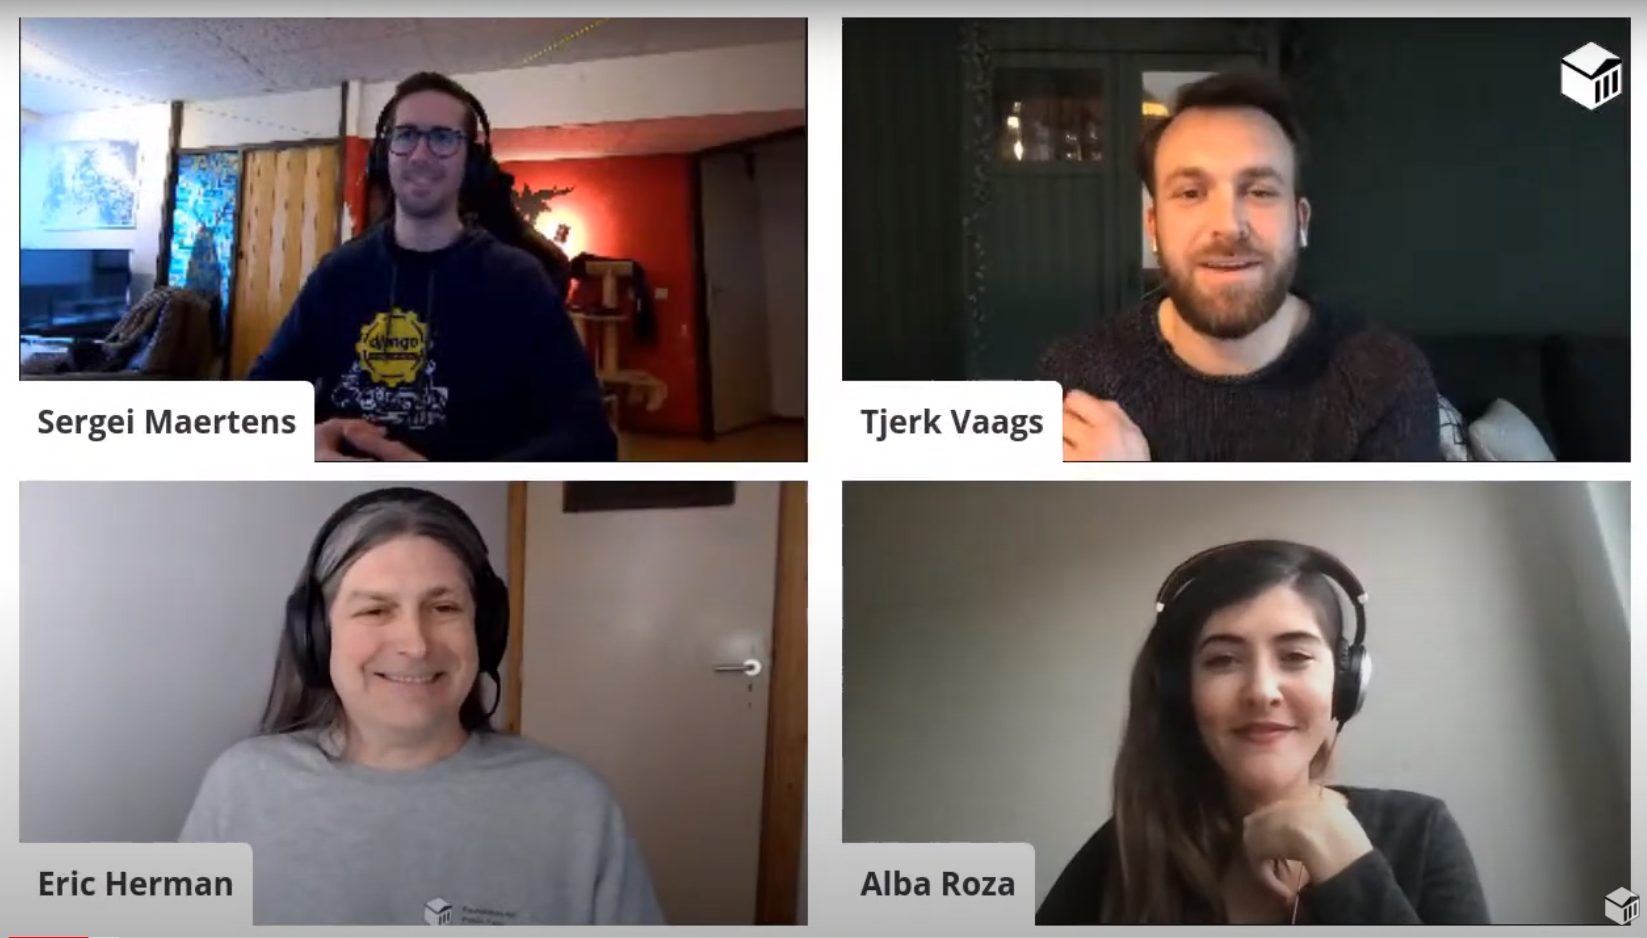 Alba, Eric, Sergei and Tjerk chatting in a video chat grid